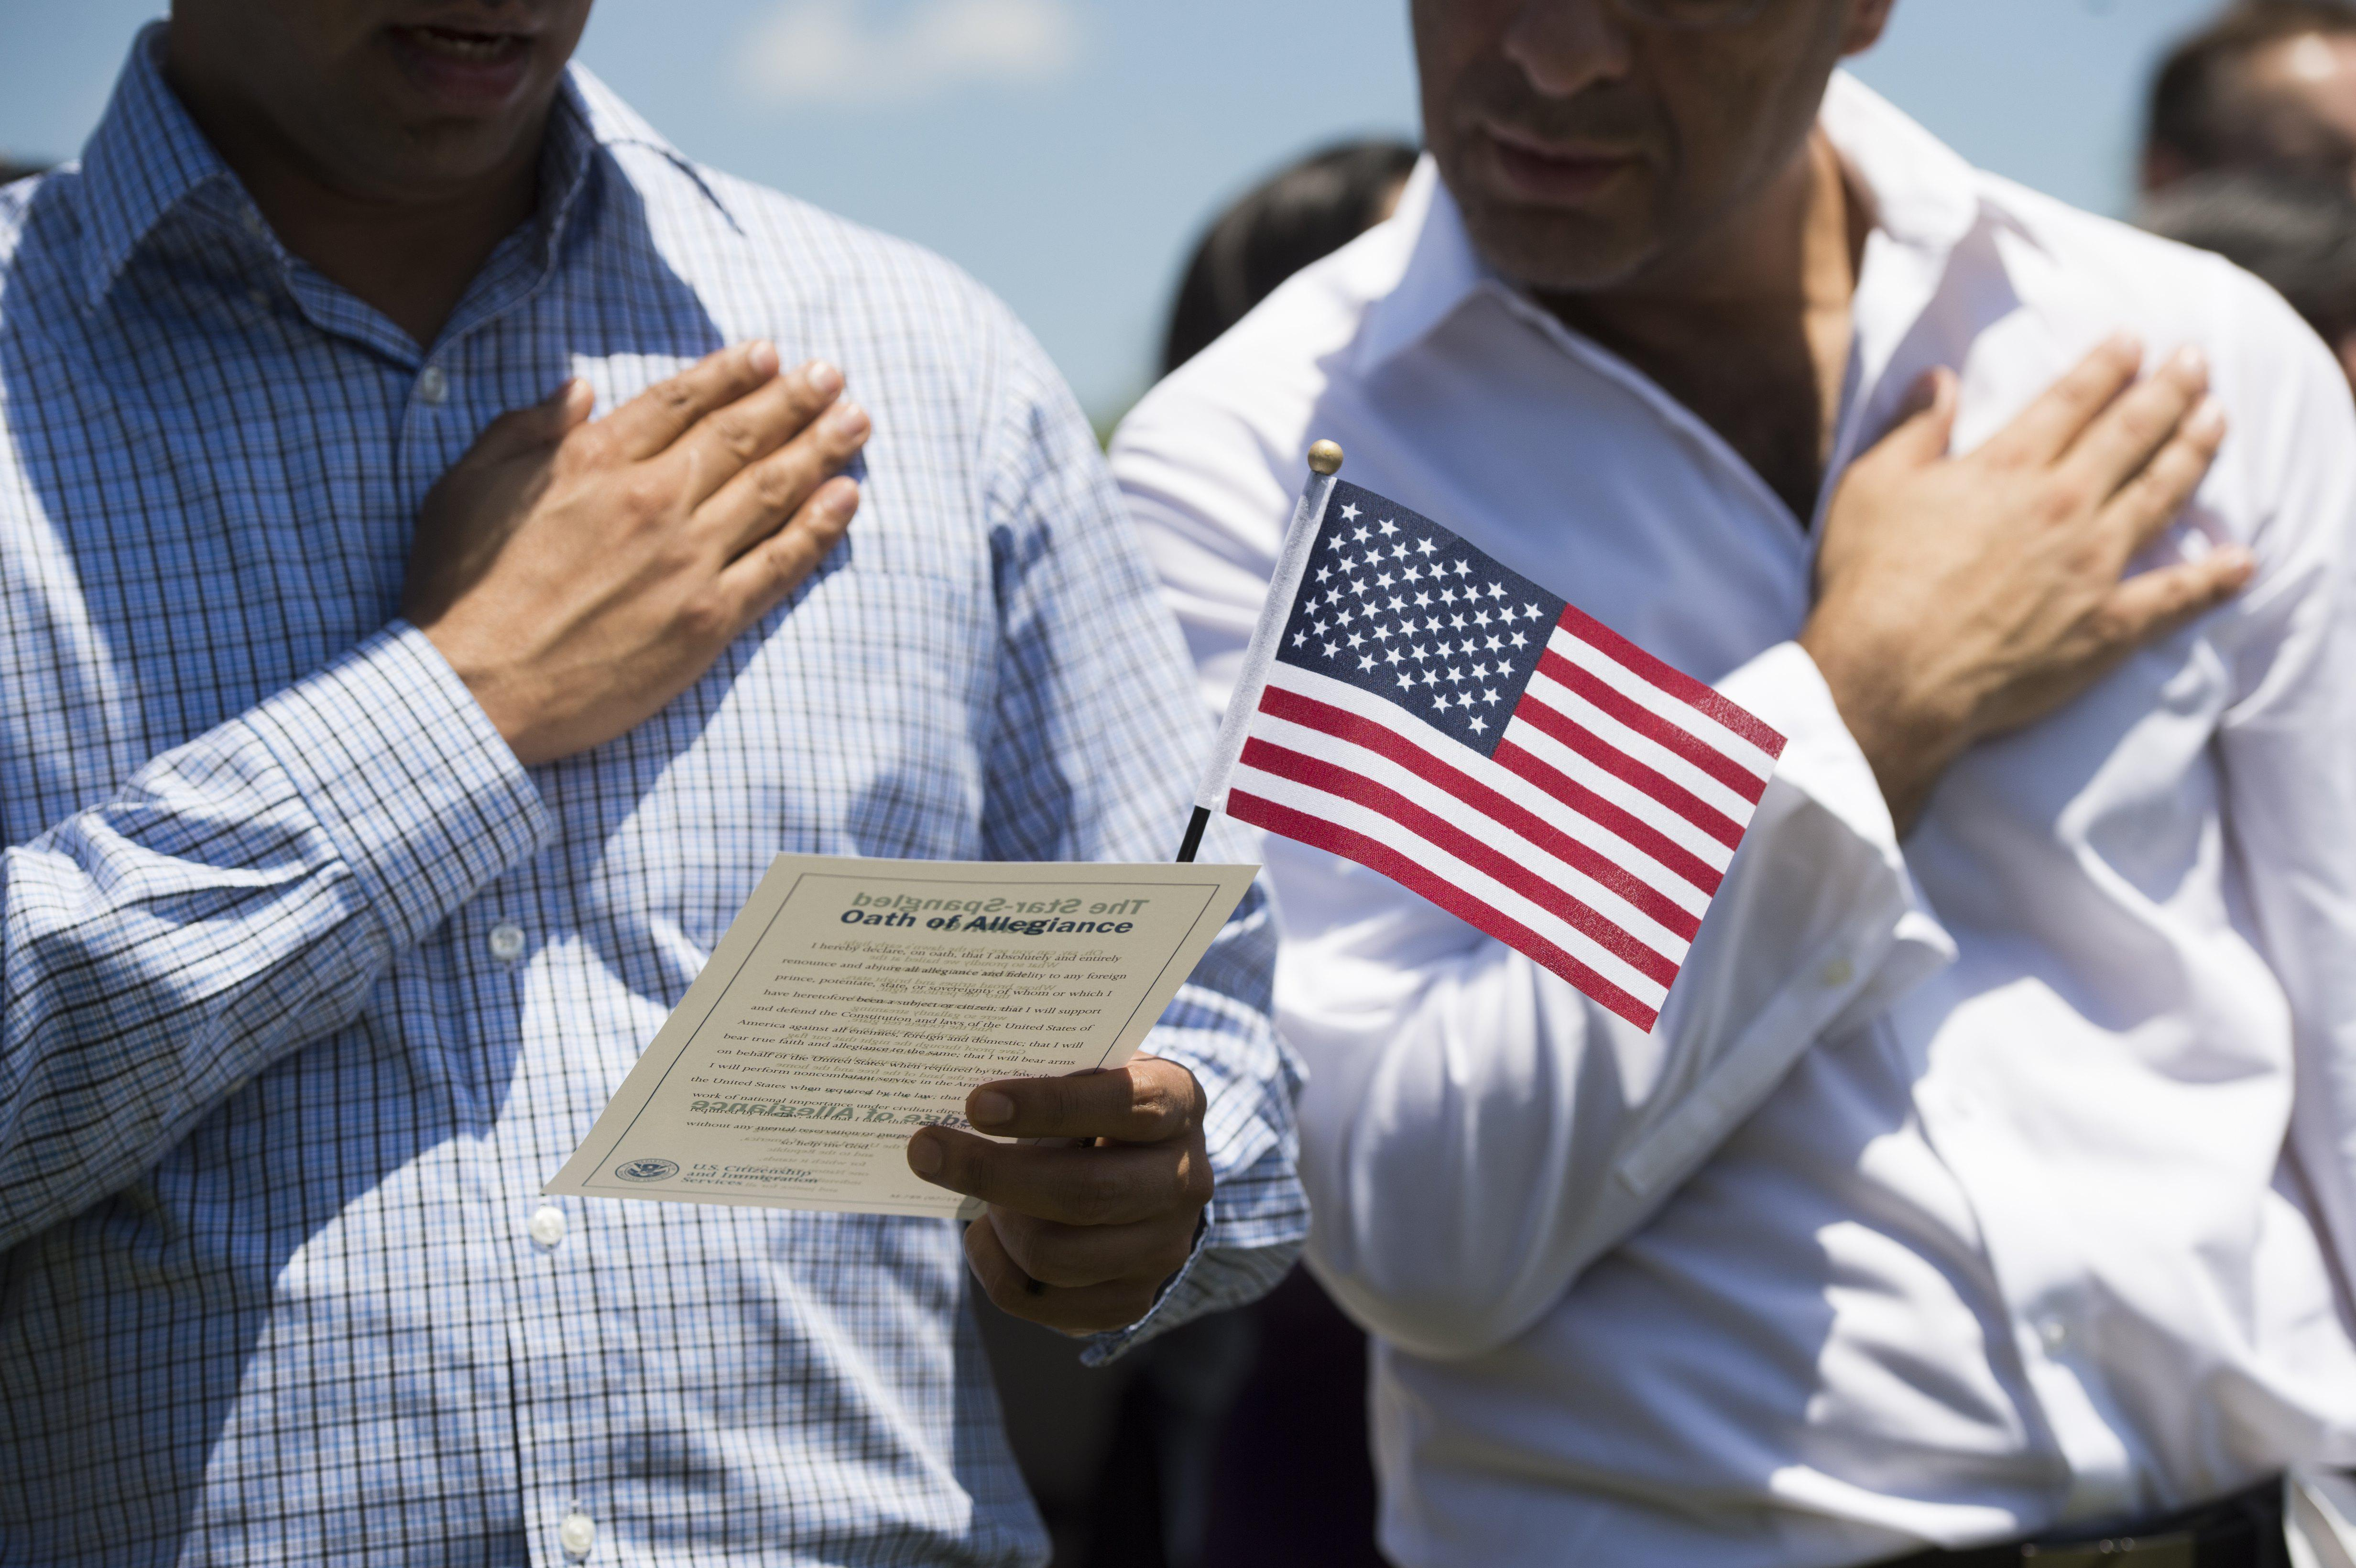 Newly sworn-in U.S. citizens recite the Pledge of Allegiance during a 2017 naturalization ceremony at Mount Vernon, Virginia.